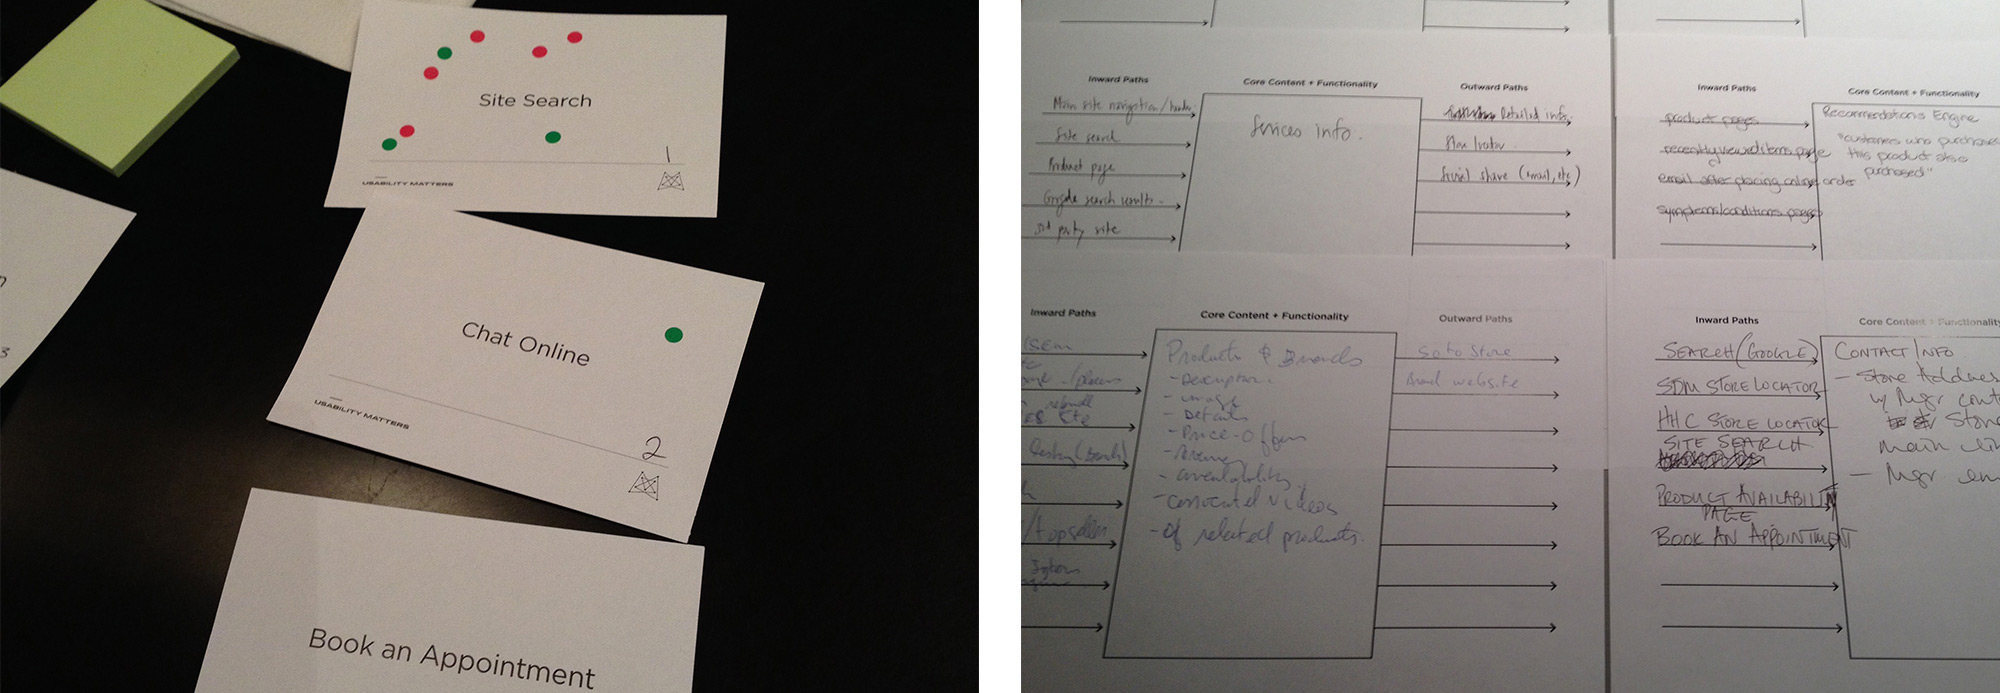 Dot voting exercise sheets, showing how many different client stakeholders support having a specific feature (e.g. search) on the new website. Cores and paths exercise sheets completed by our client stakeholders.